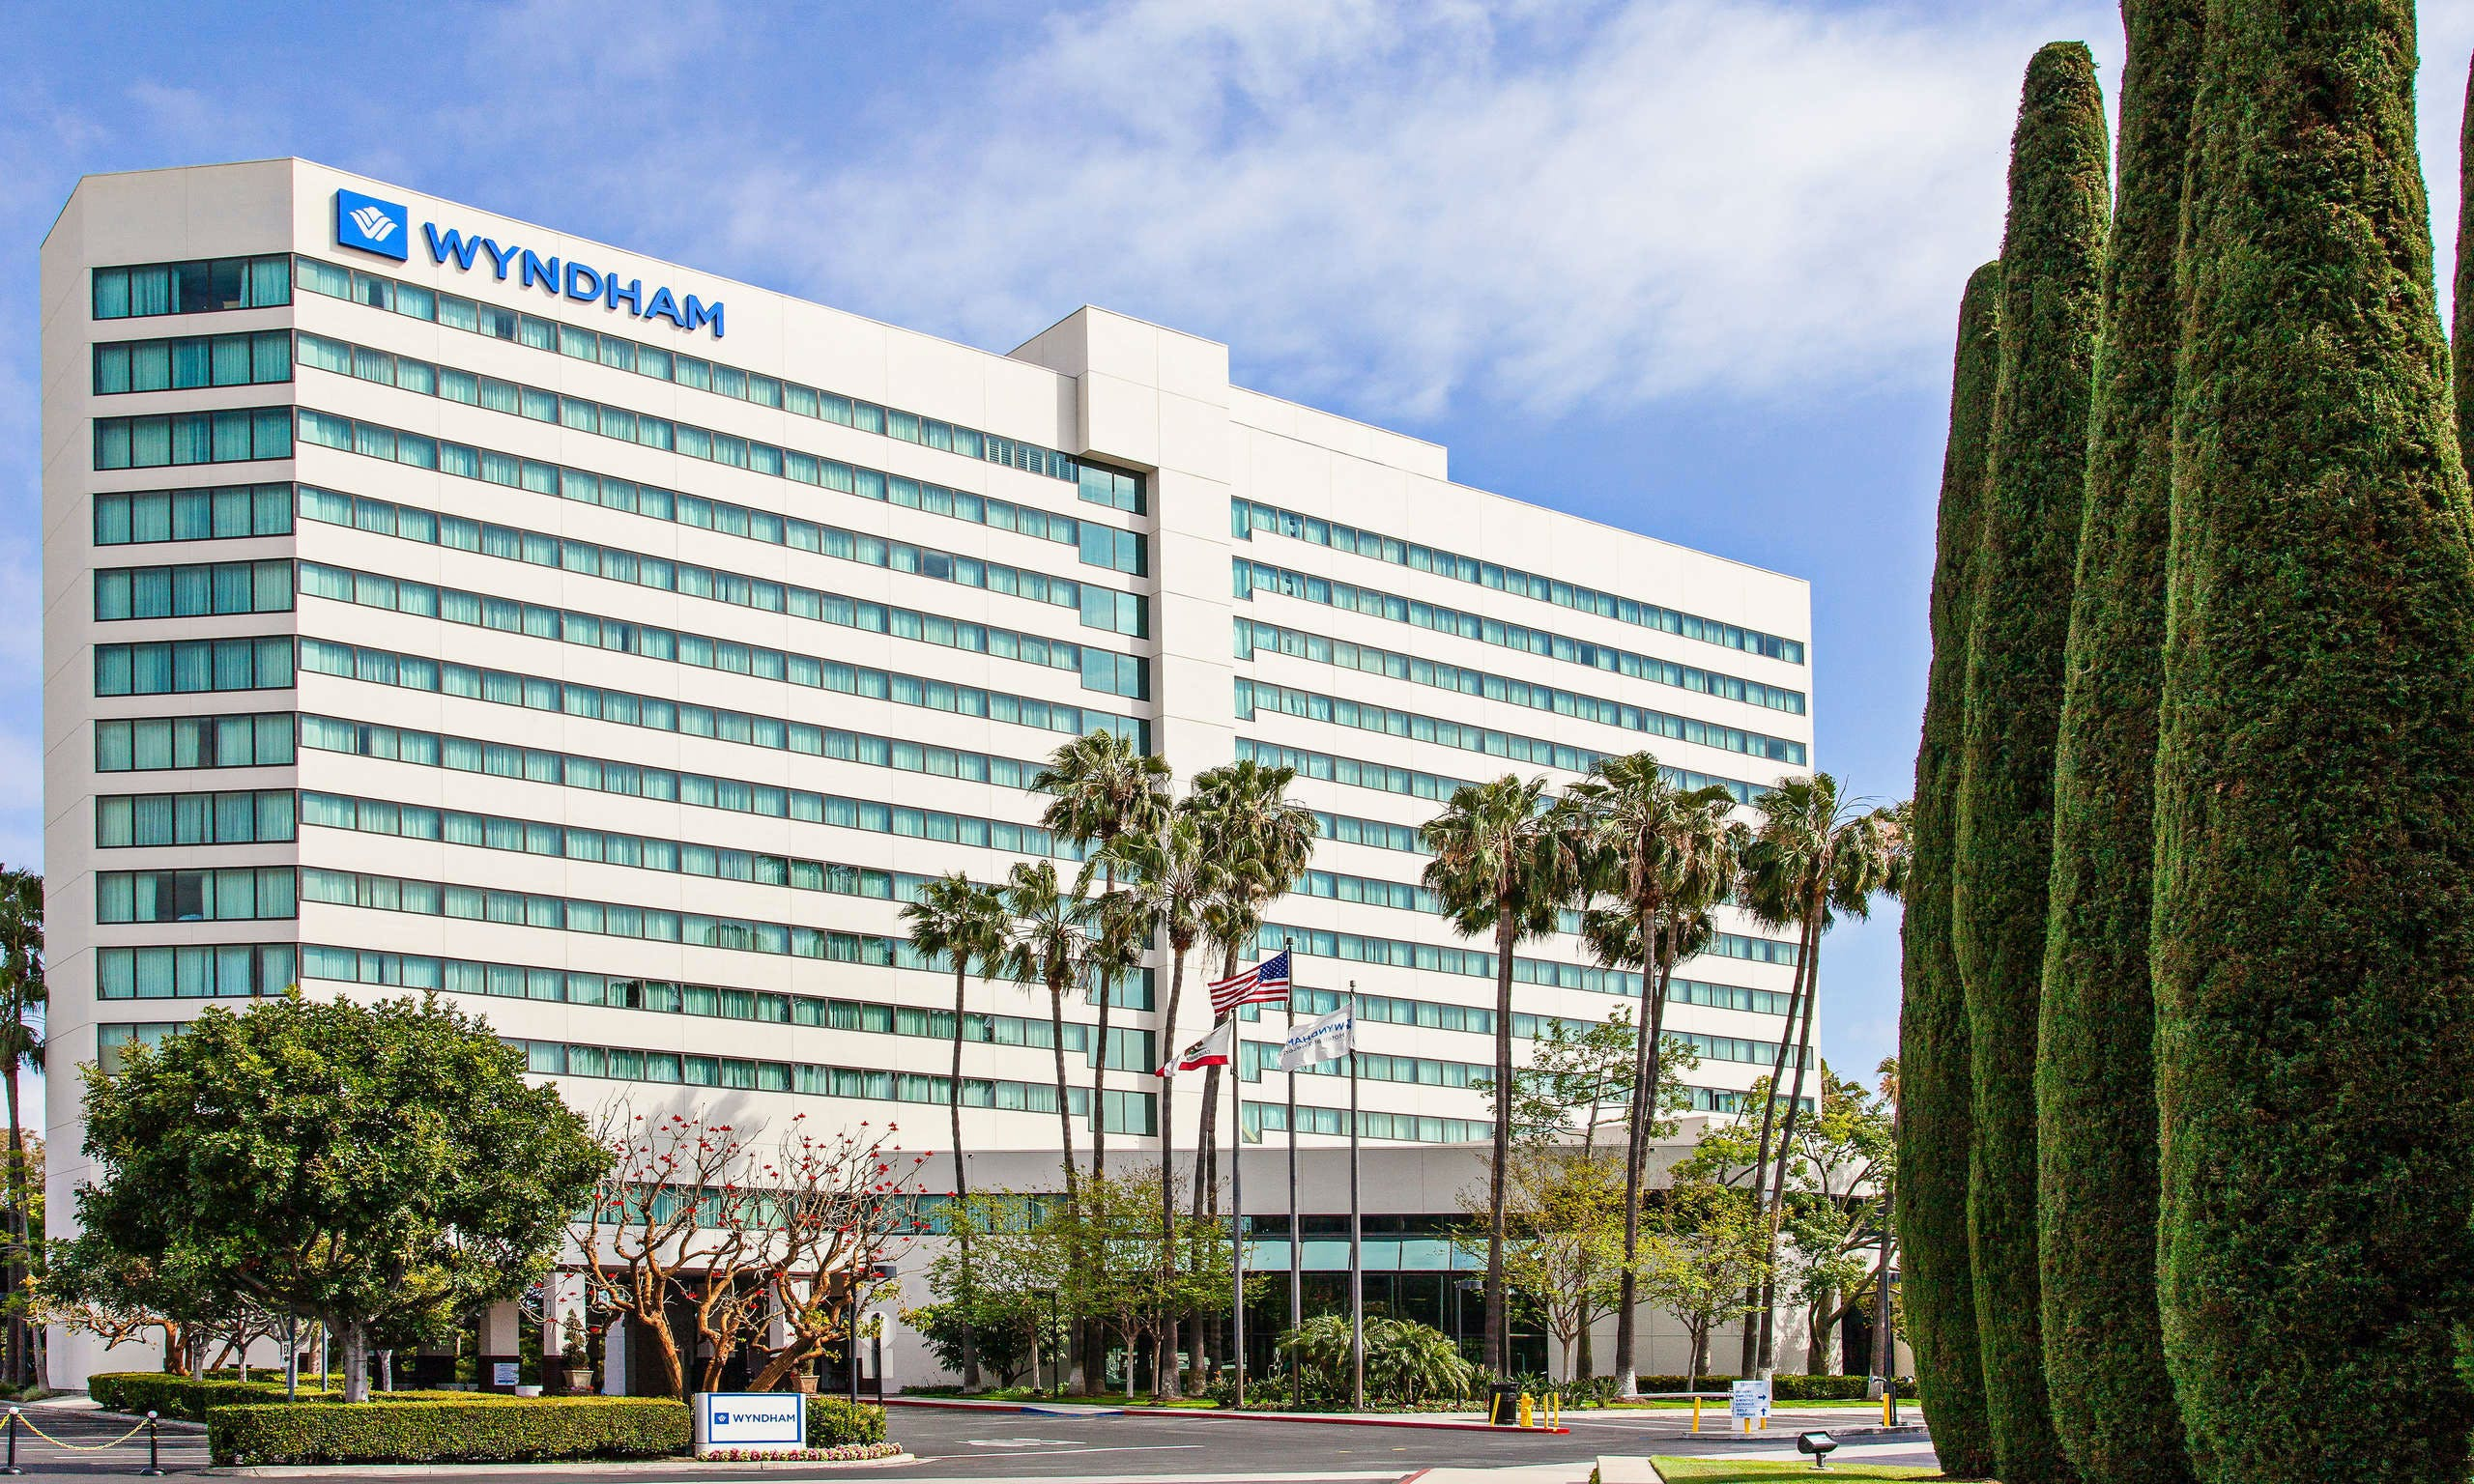 Wyndham Irvine Orange County Airport